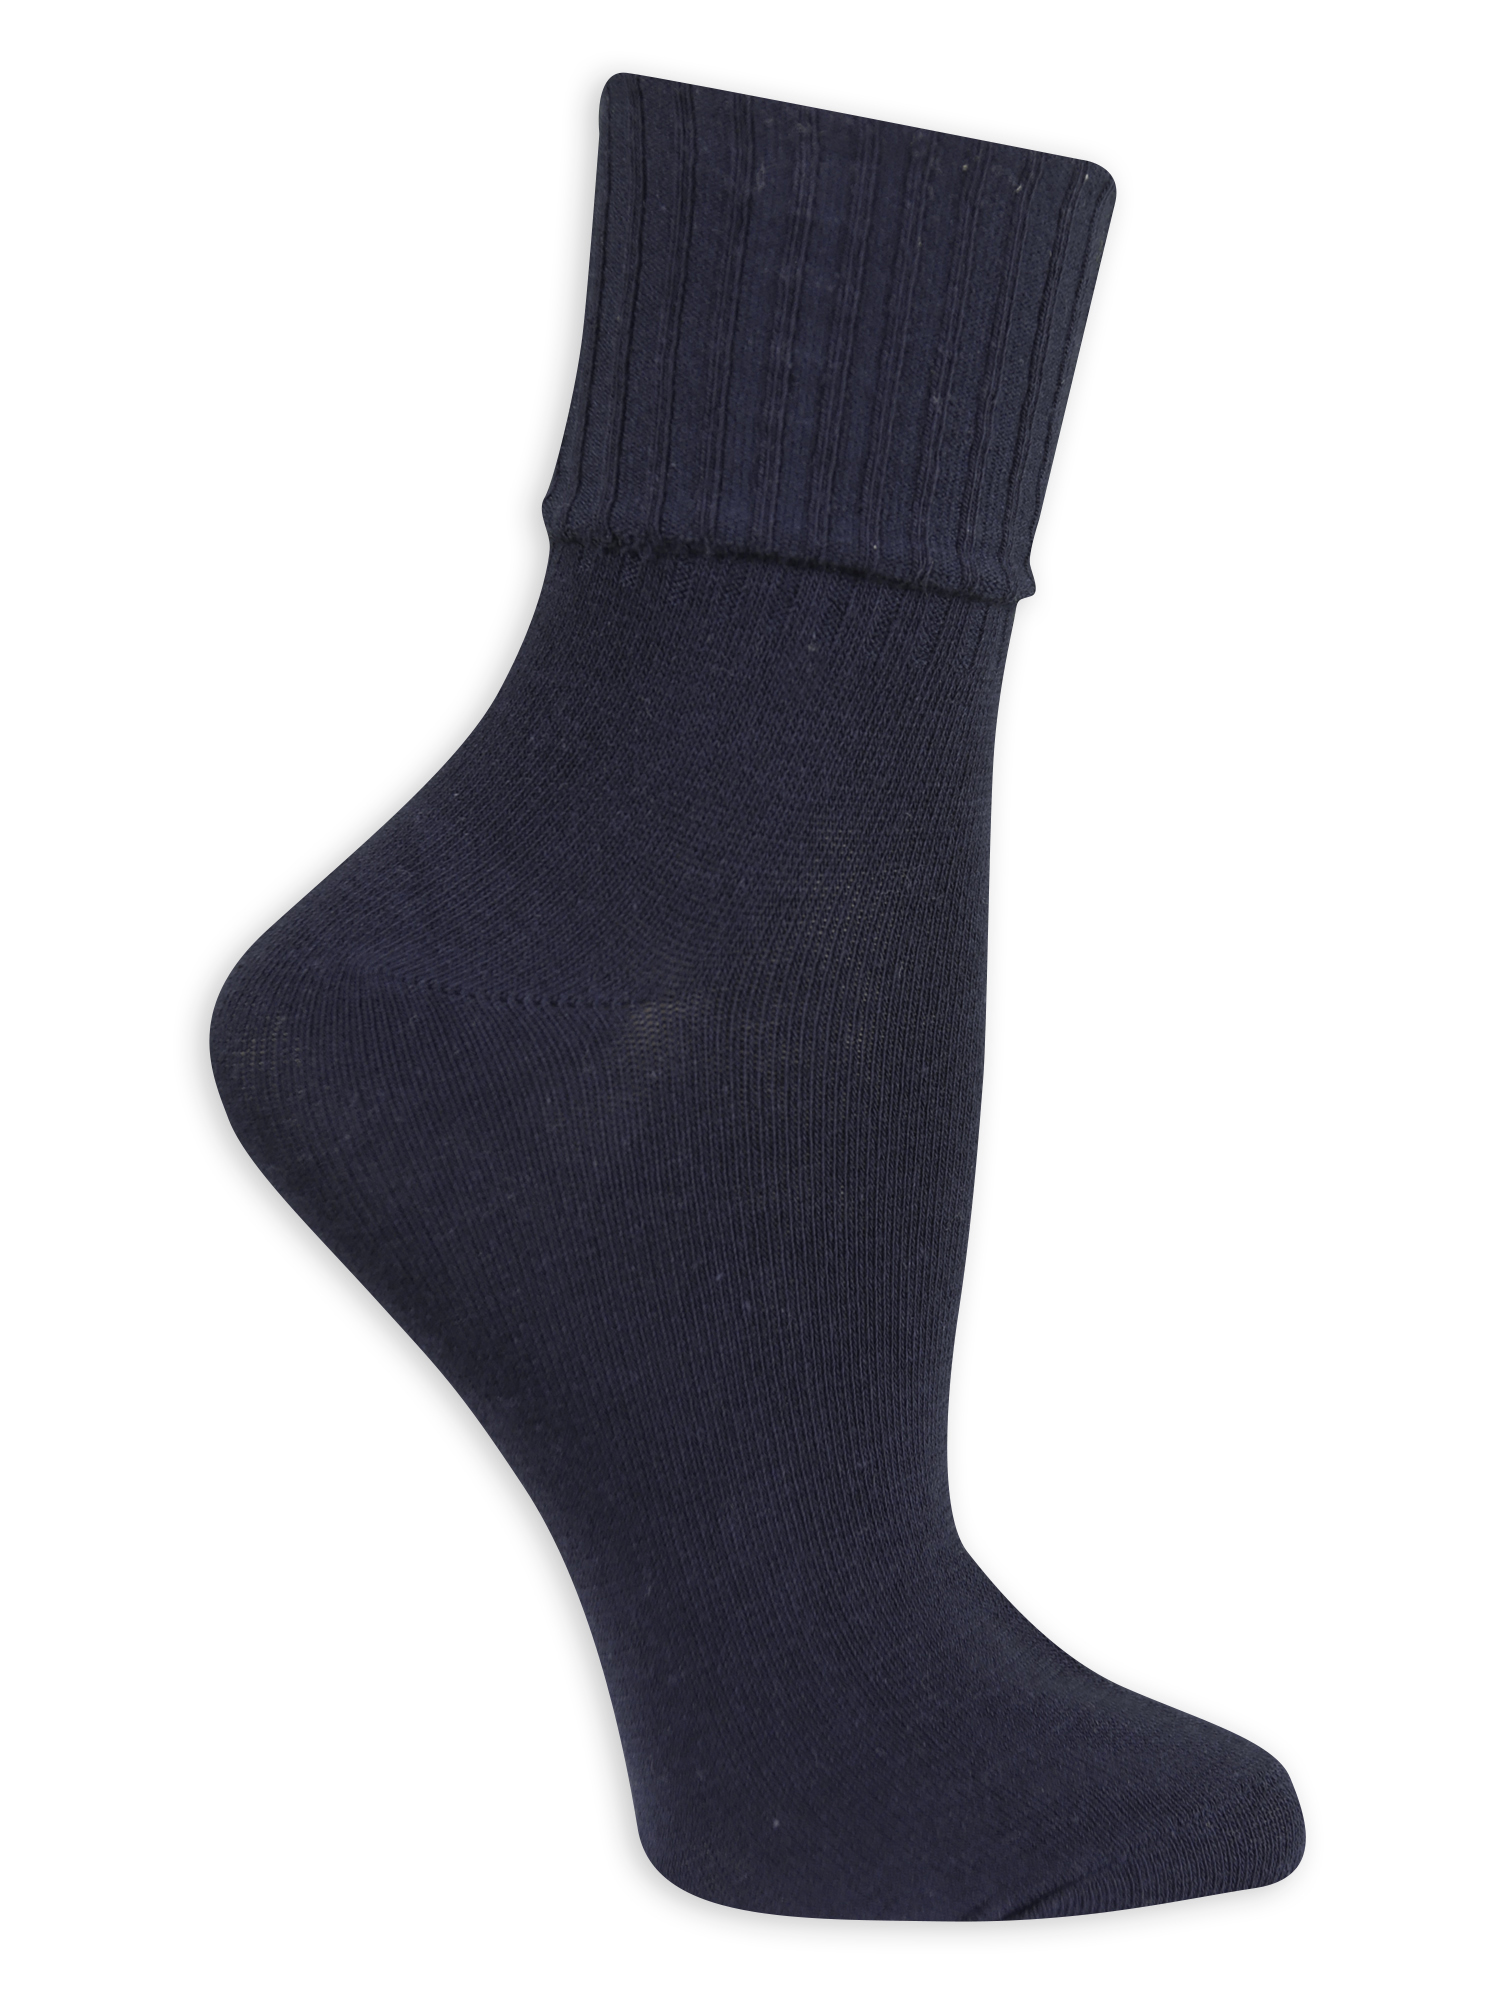 01e2666206b3 Women s Turn Cuff Socks 3 Pack - Walmart.com